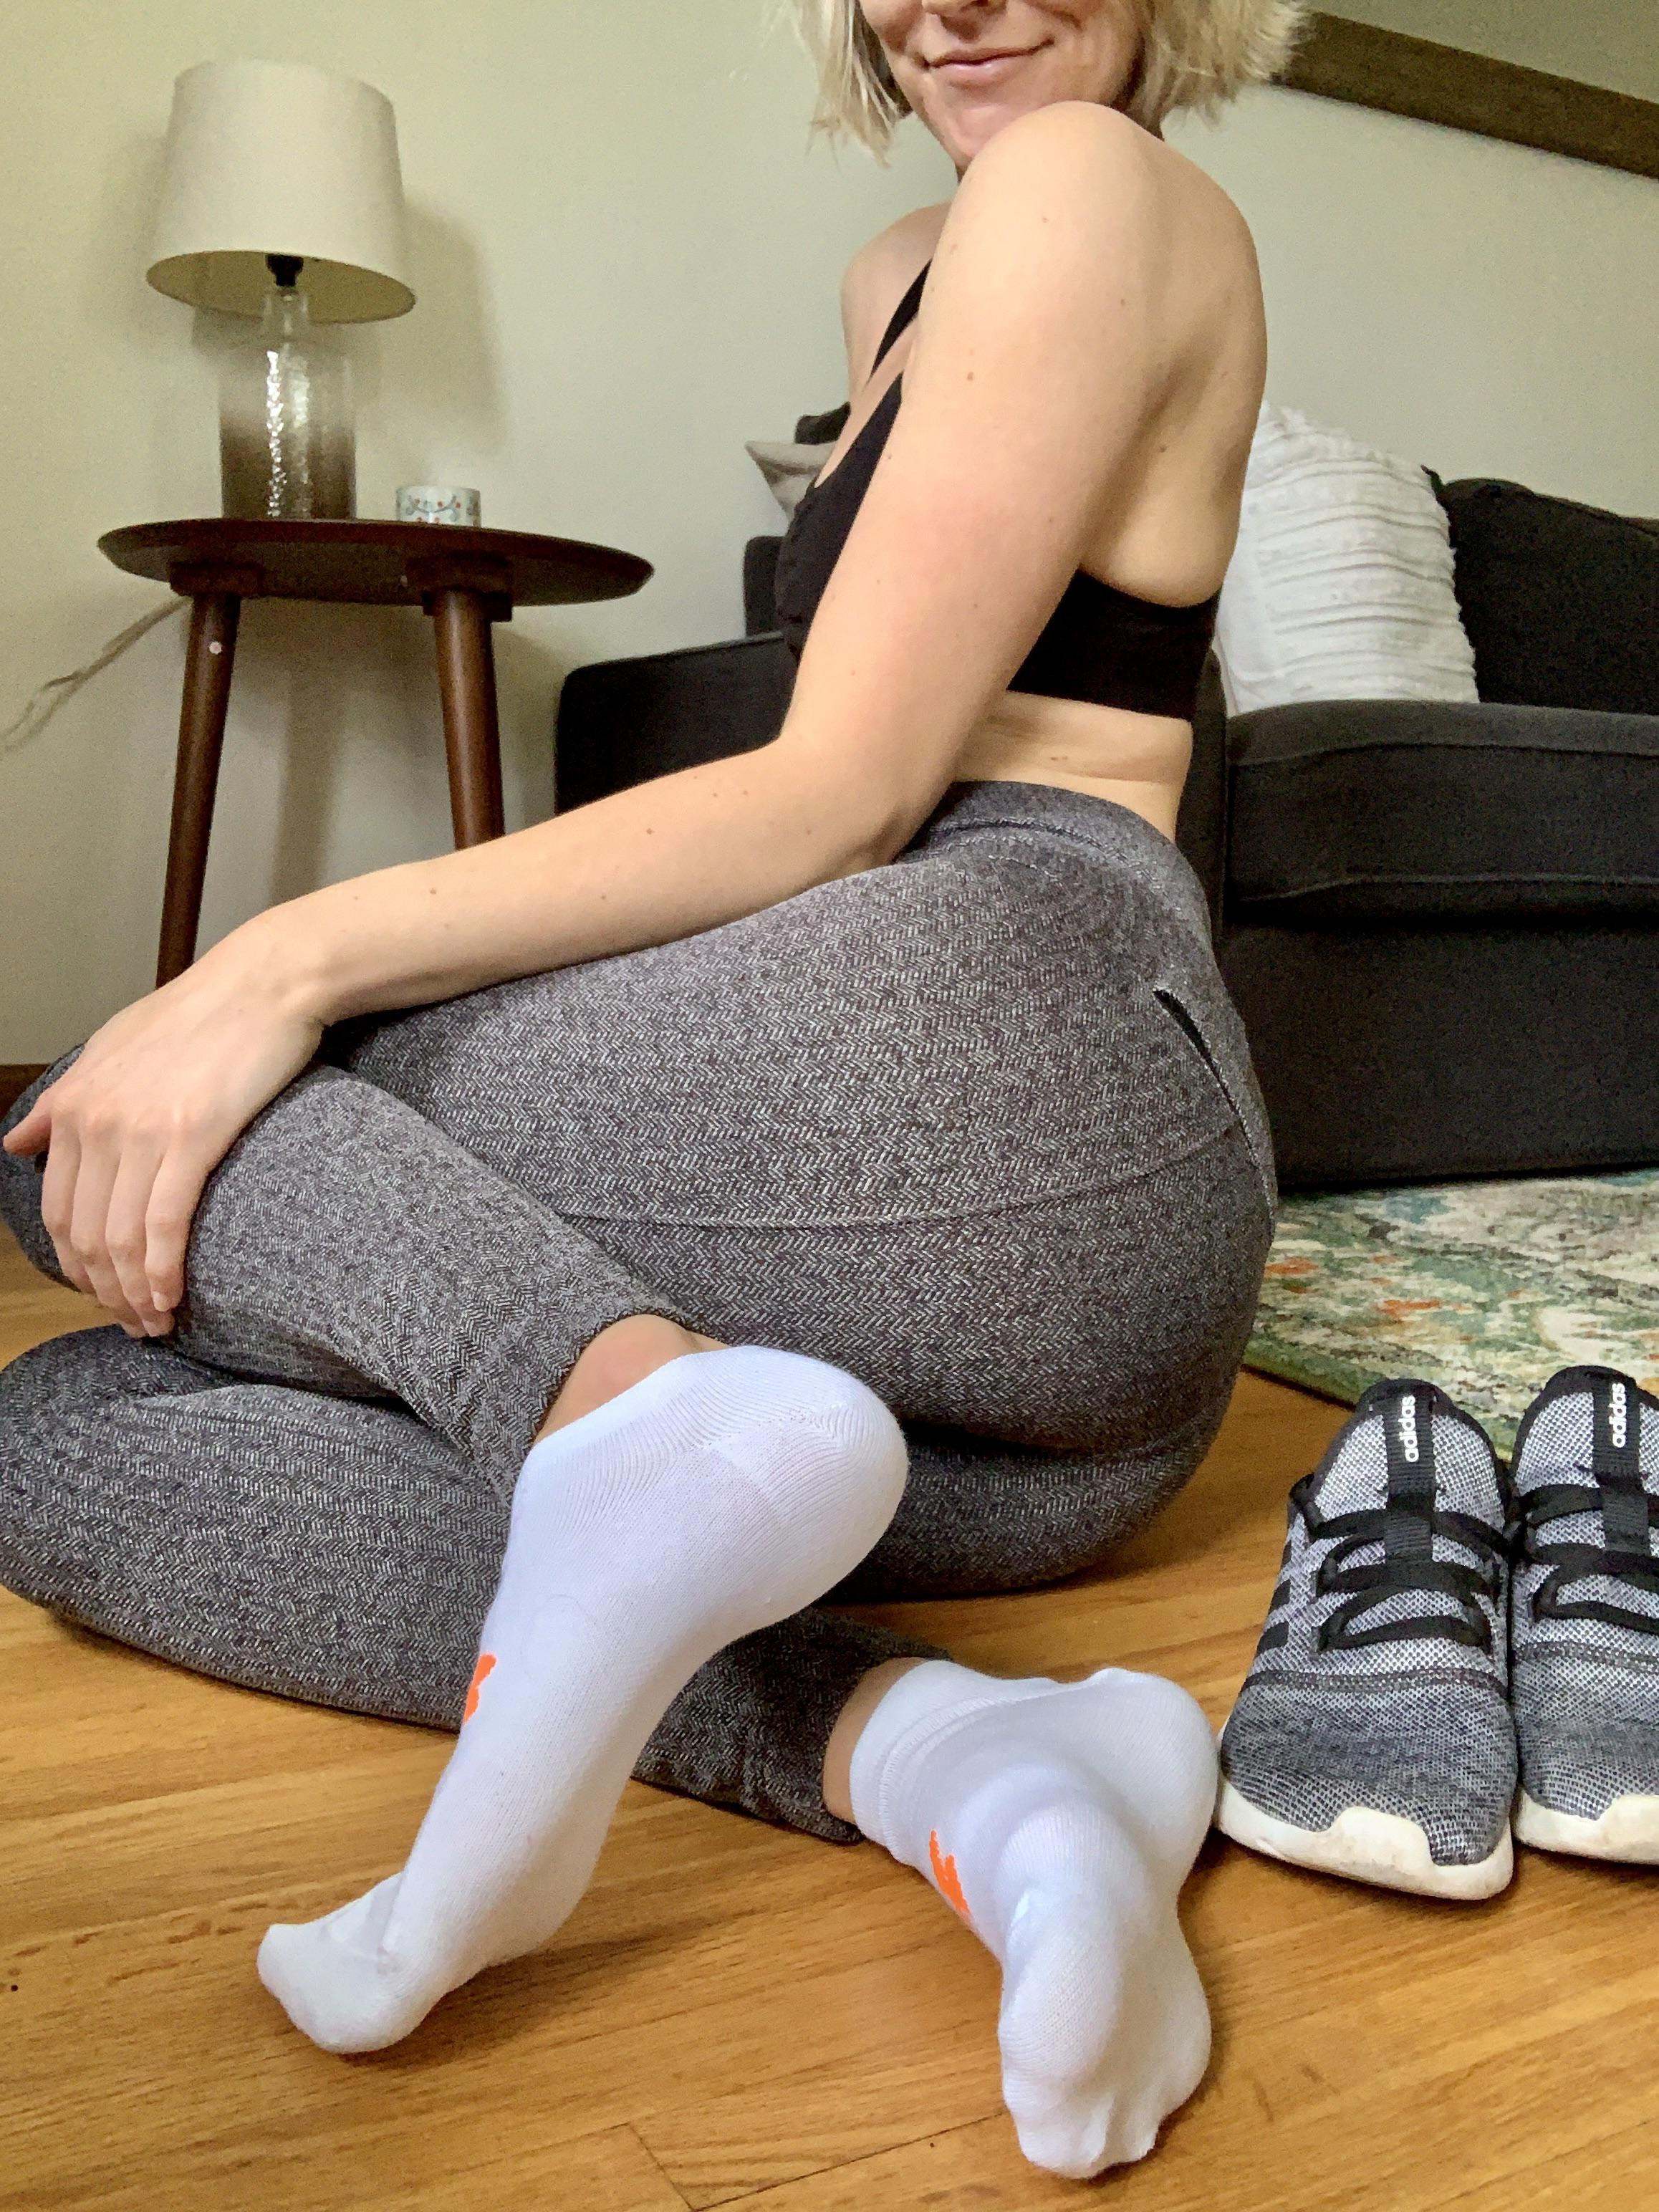 Sock Fetish Pictures photo 9